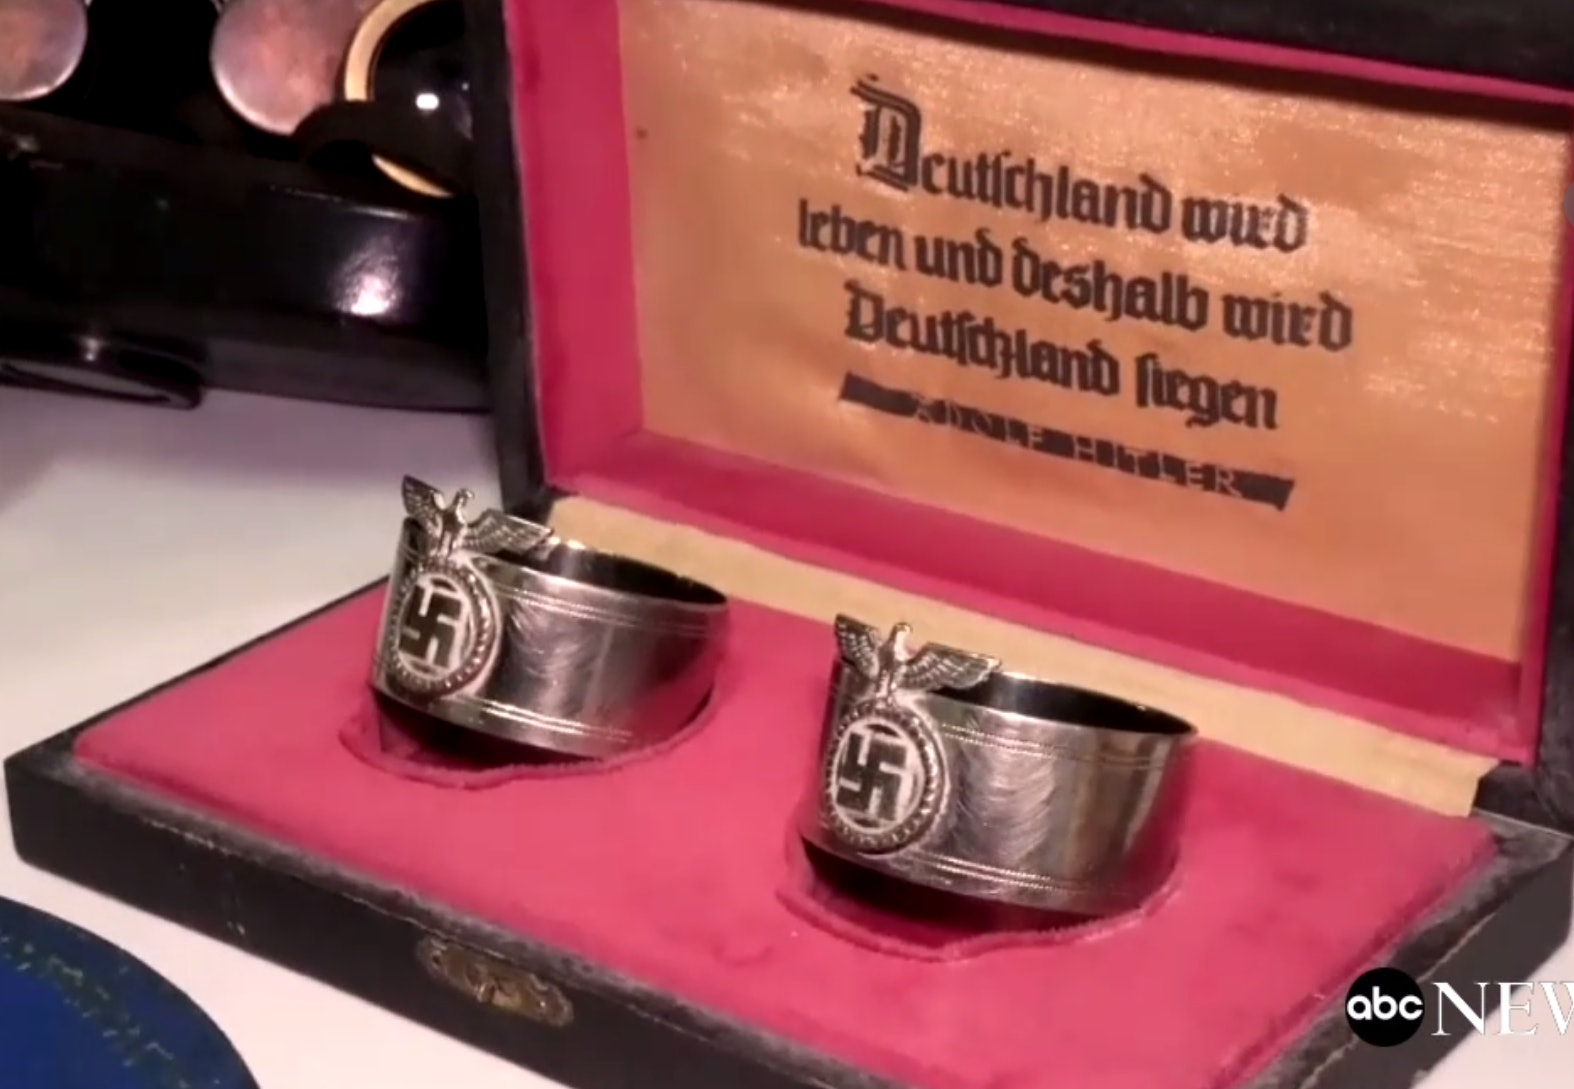 Nazi artifacts found in Argentina house.